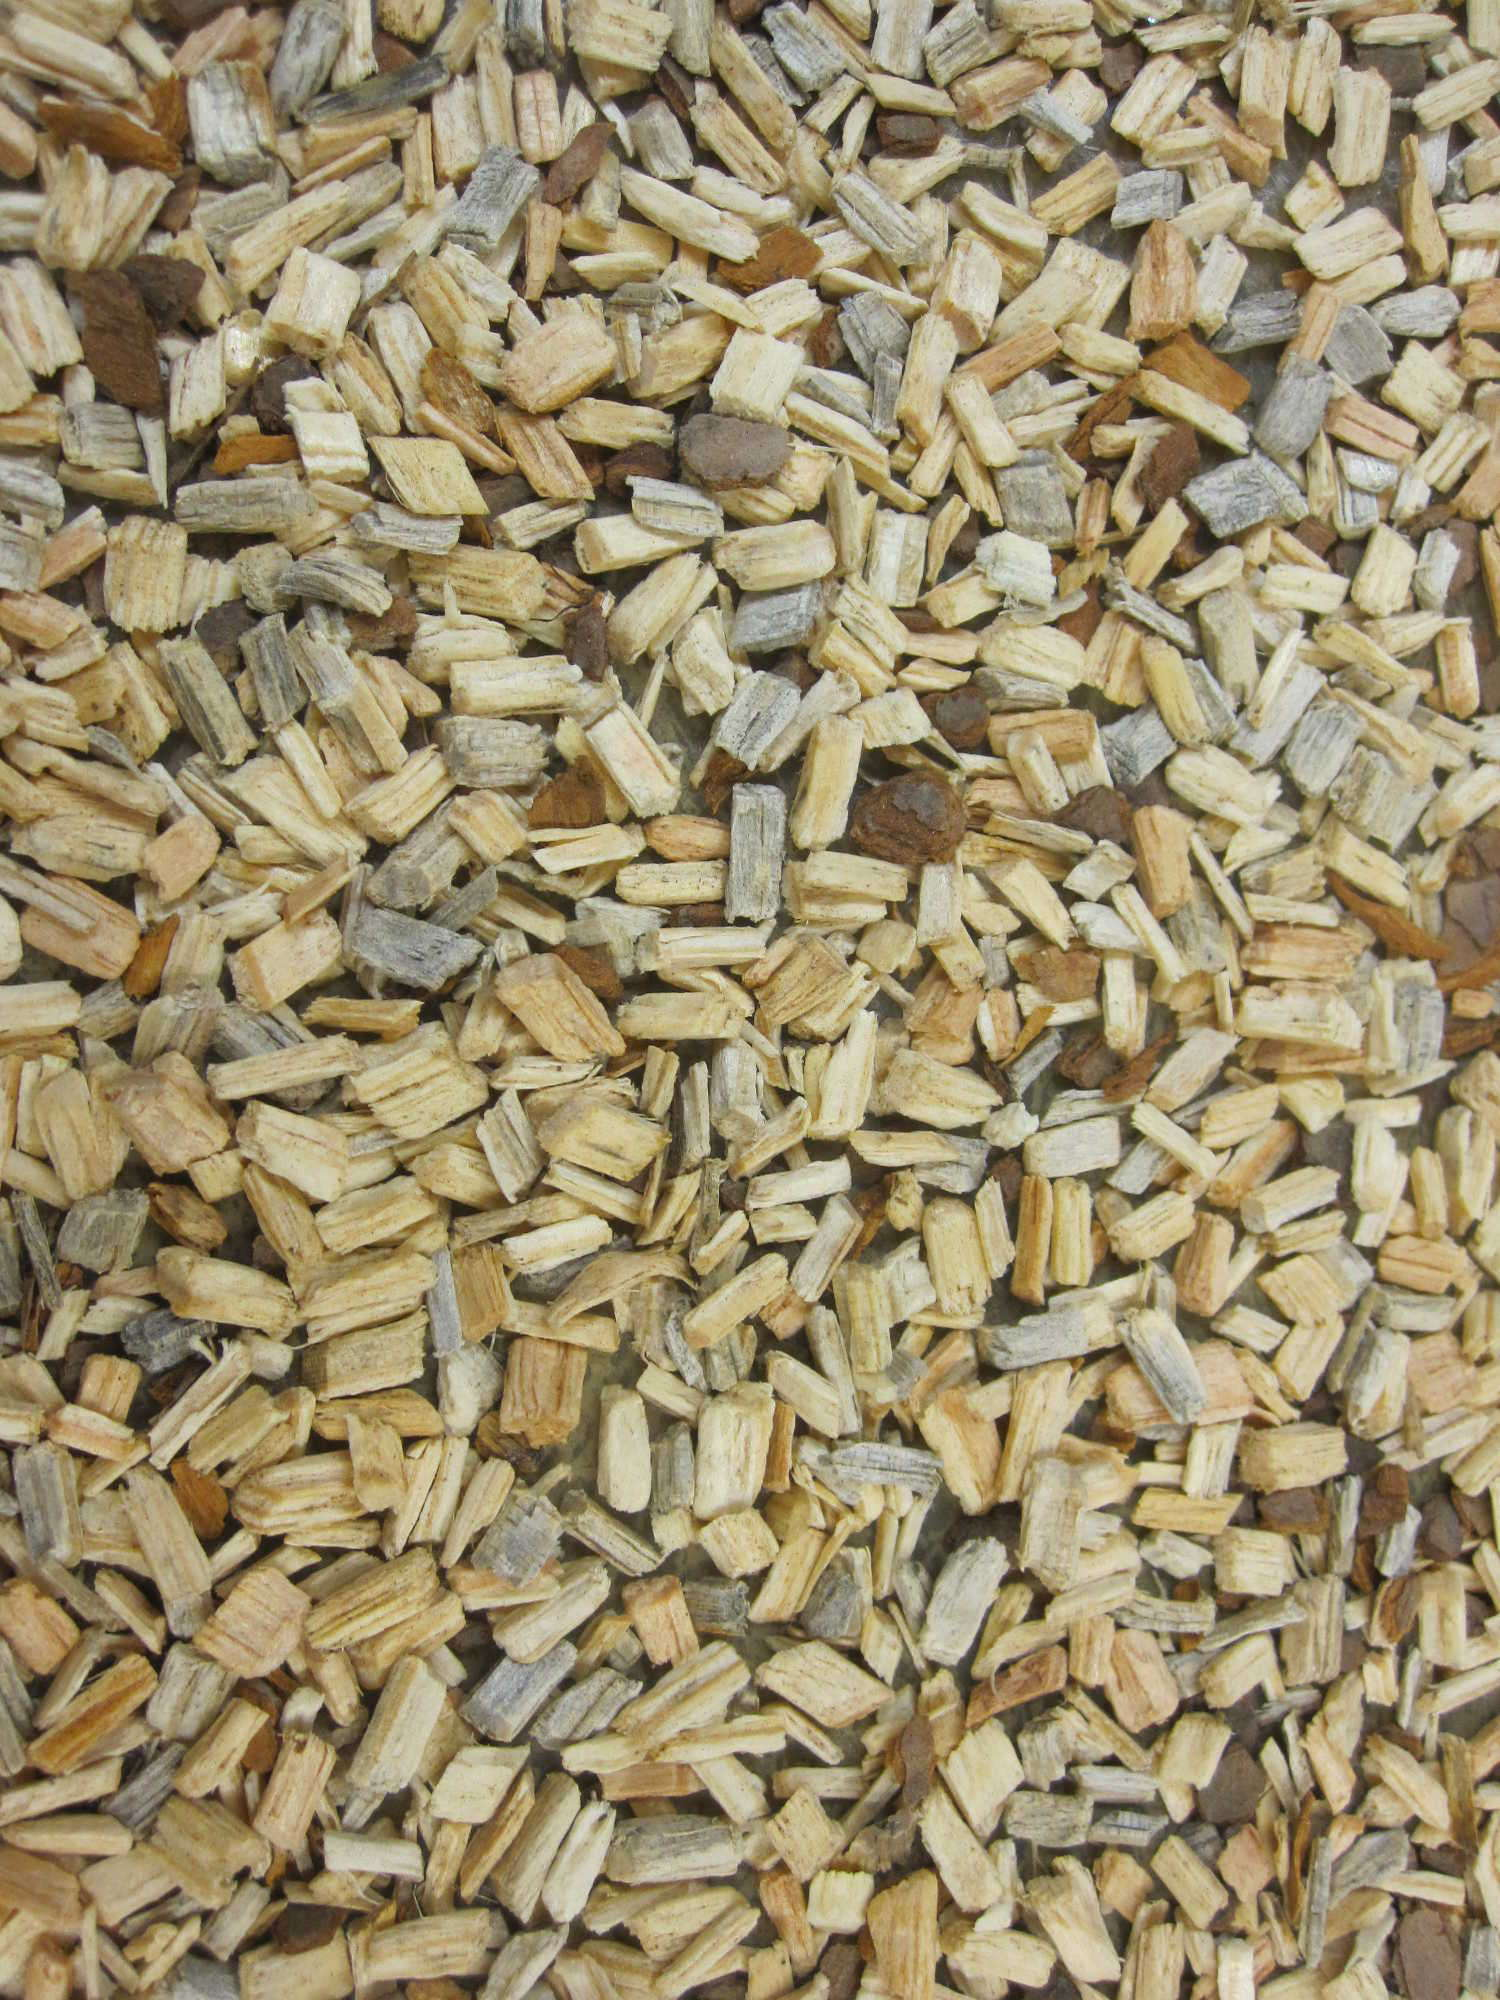 Pine wood chips as an alternative to perlite in greenhouse